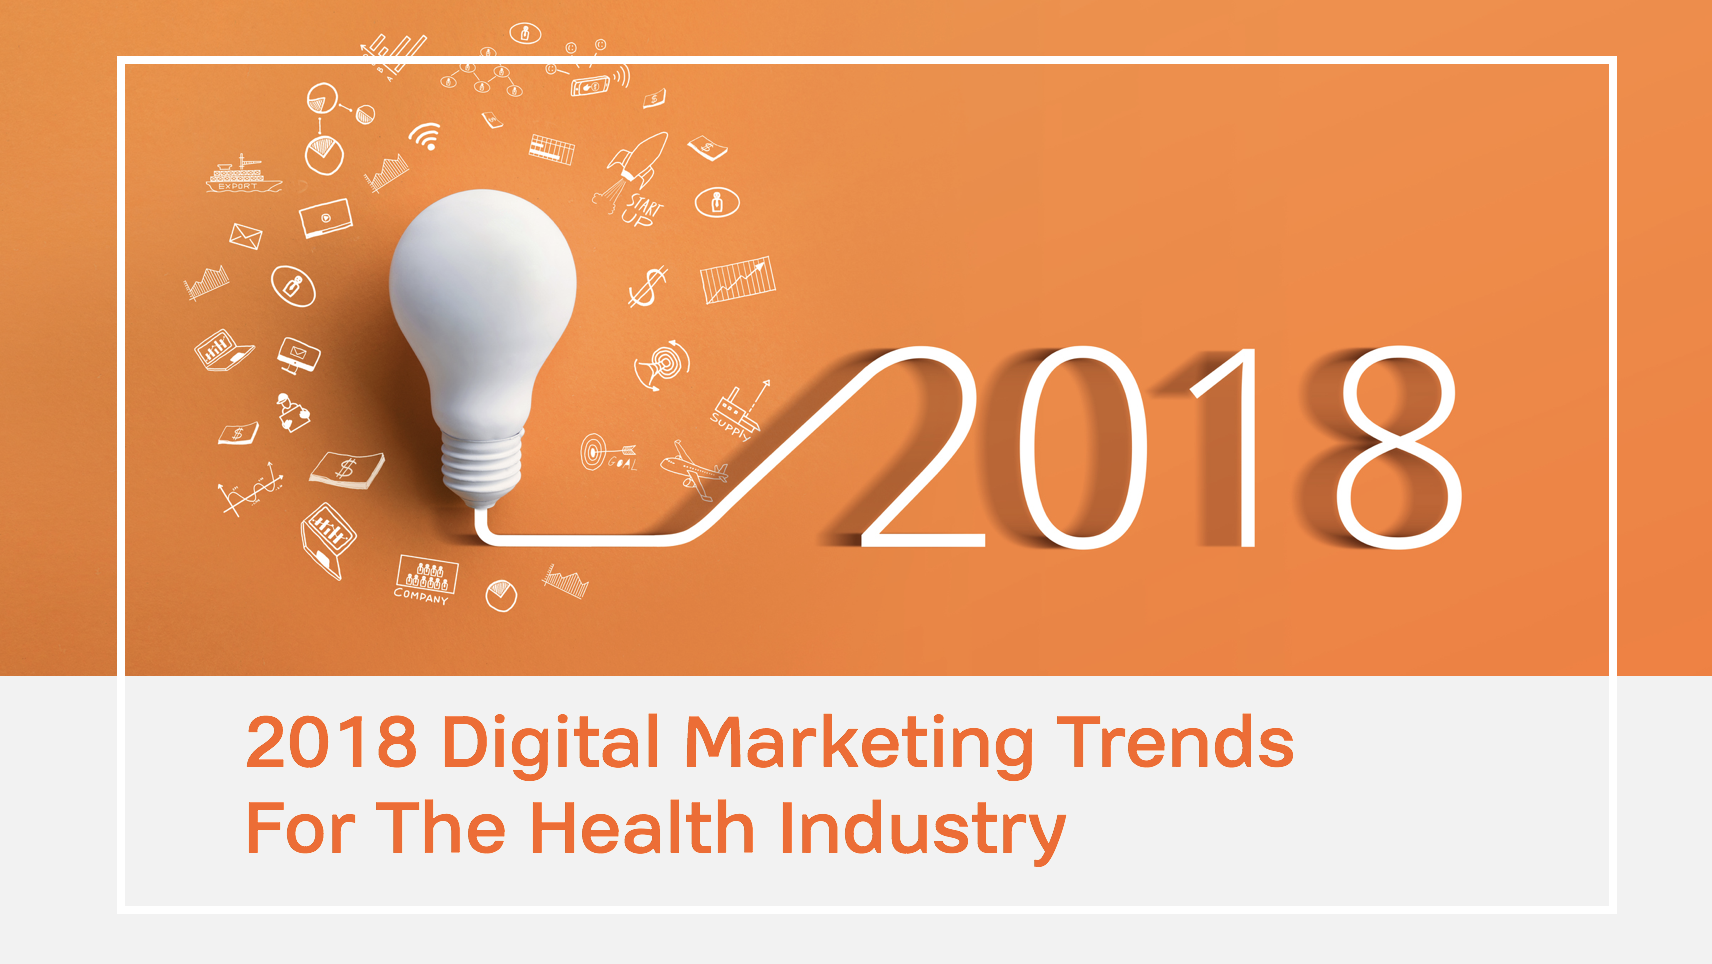 The Top 3, 2018 Marketing Trends for the Health Industry